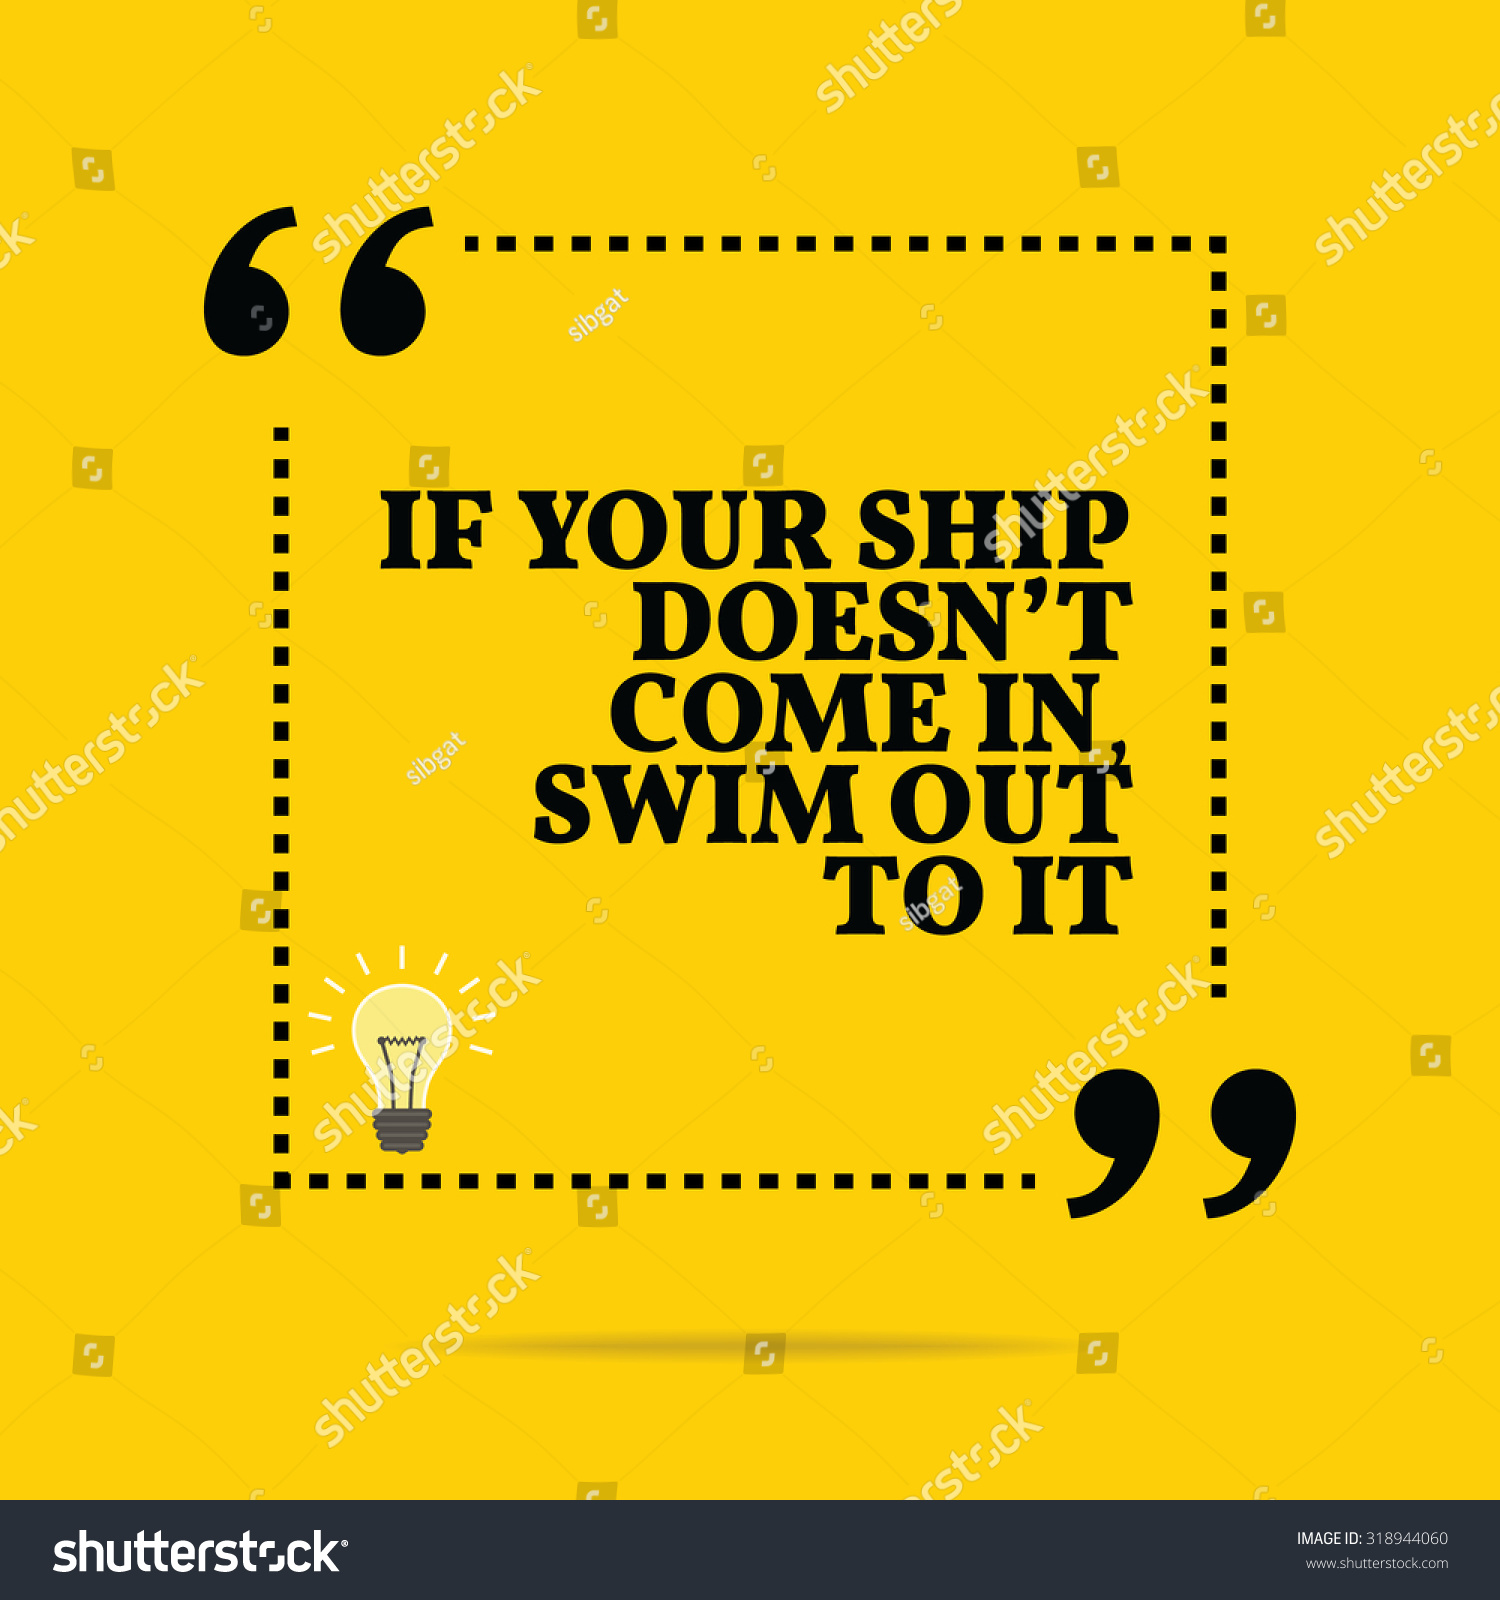 Simple Typography Spells Out A Powerful Motivation For: Inspirational Motivational Quote Your Ship Doesnt Stock